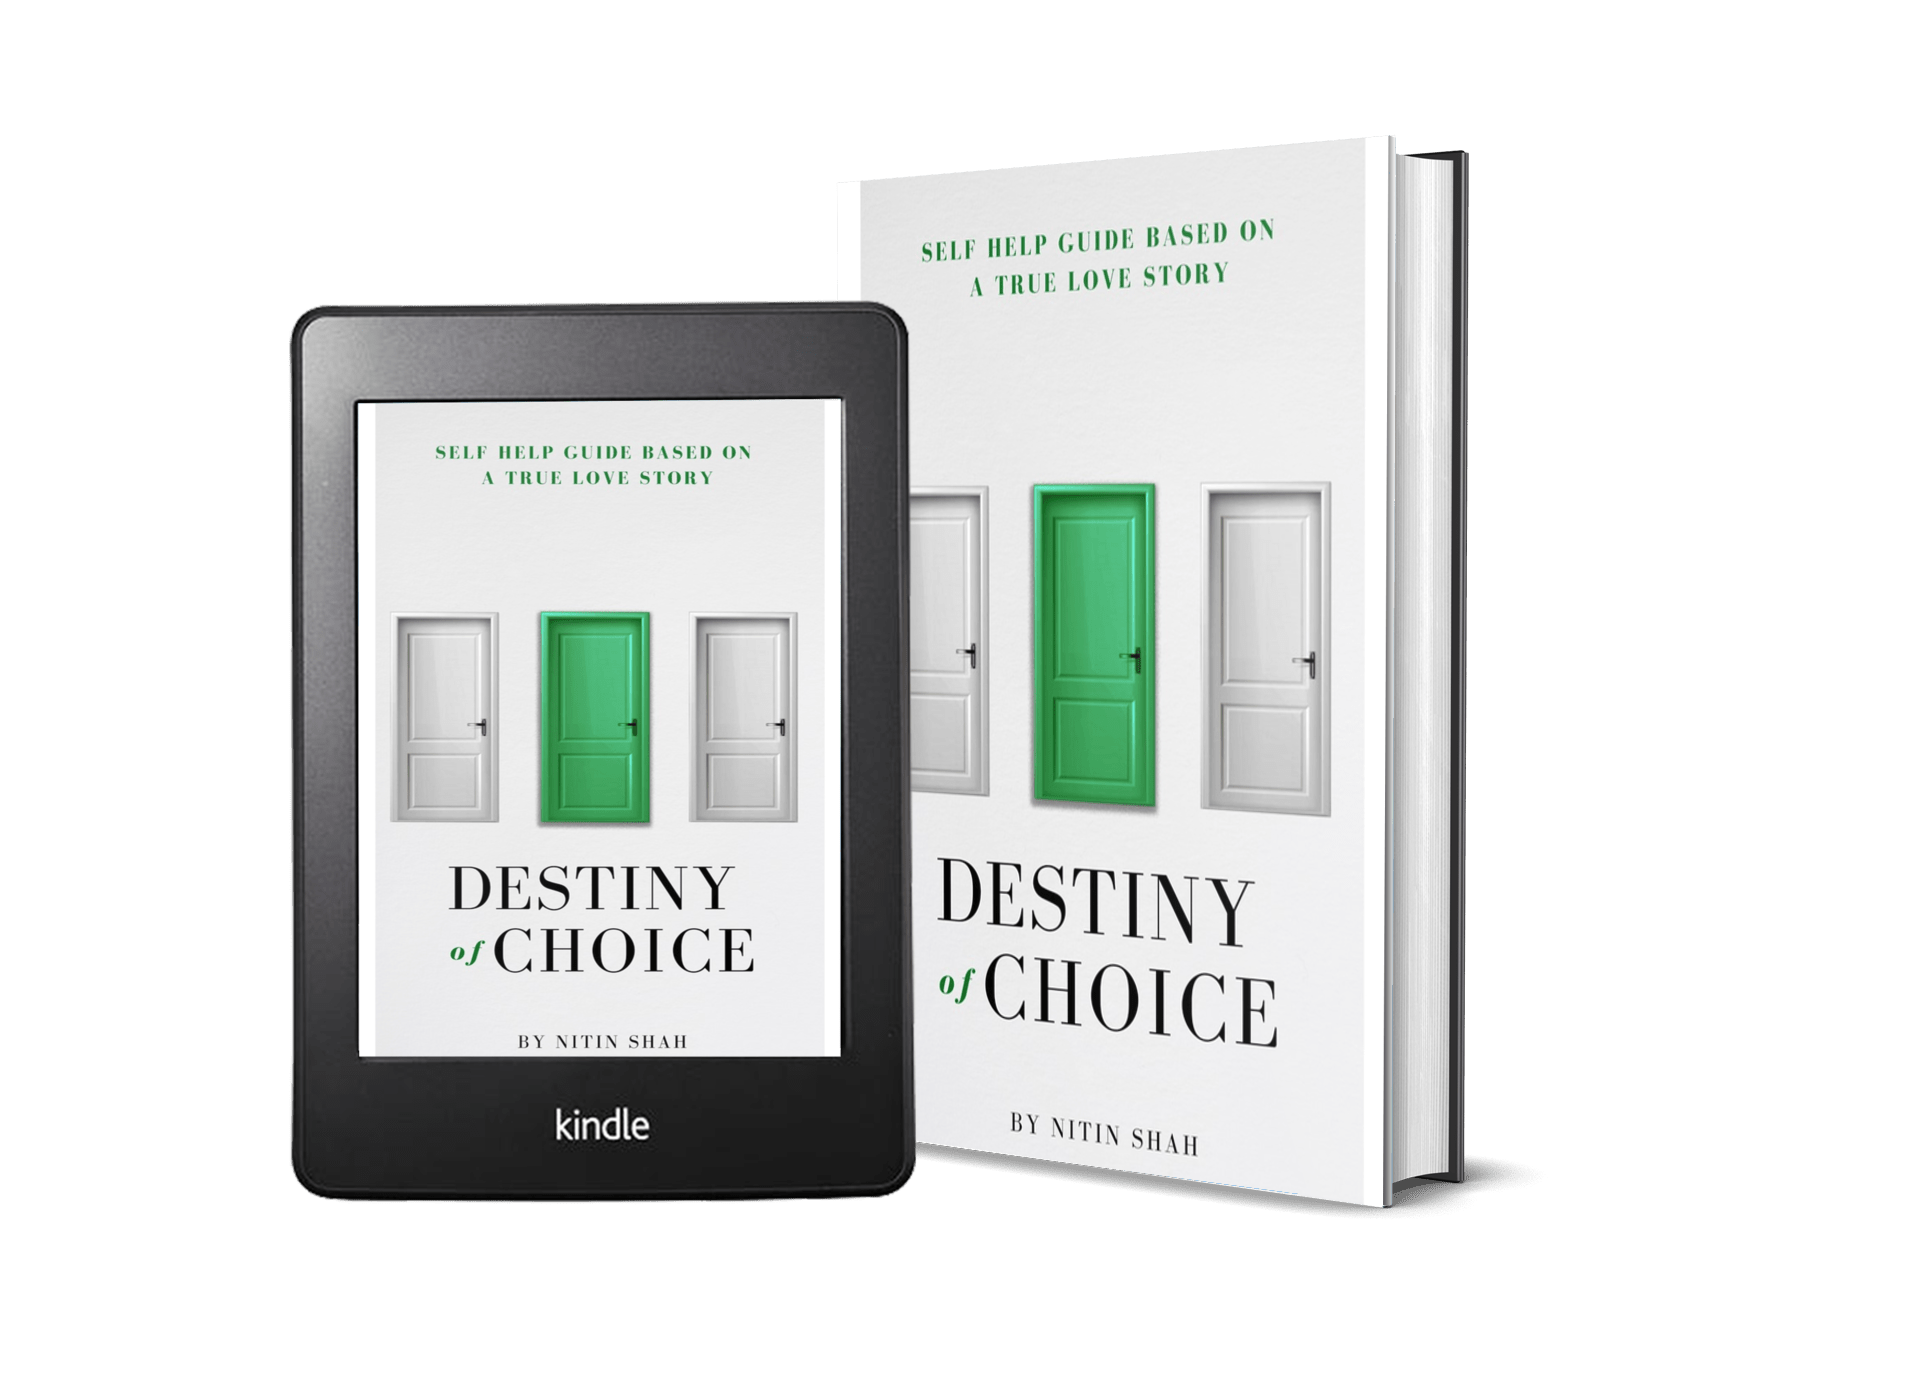 Destiny of choice book - About us